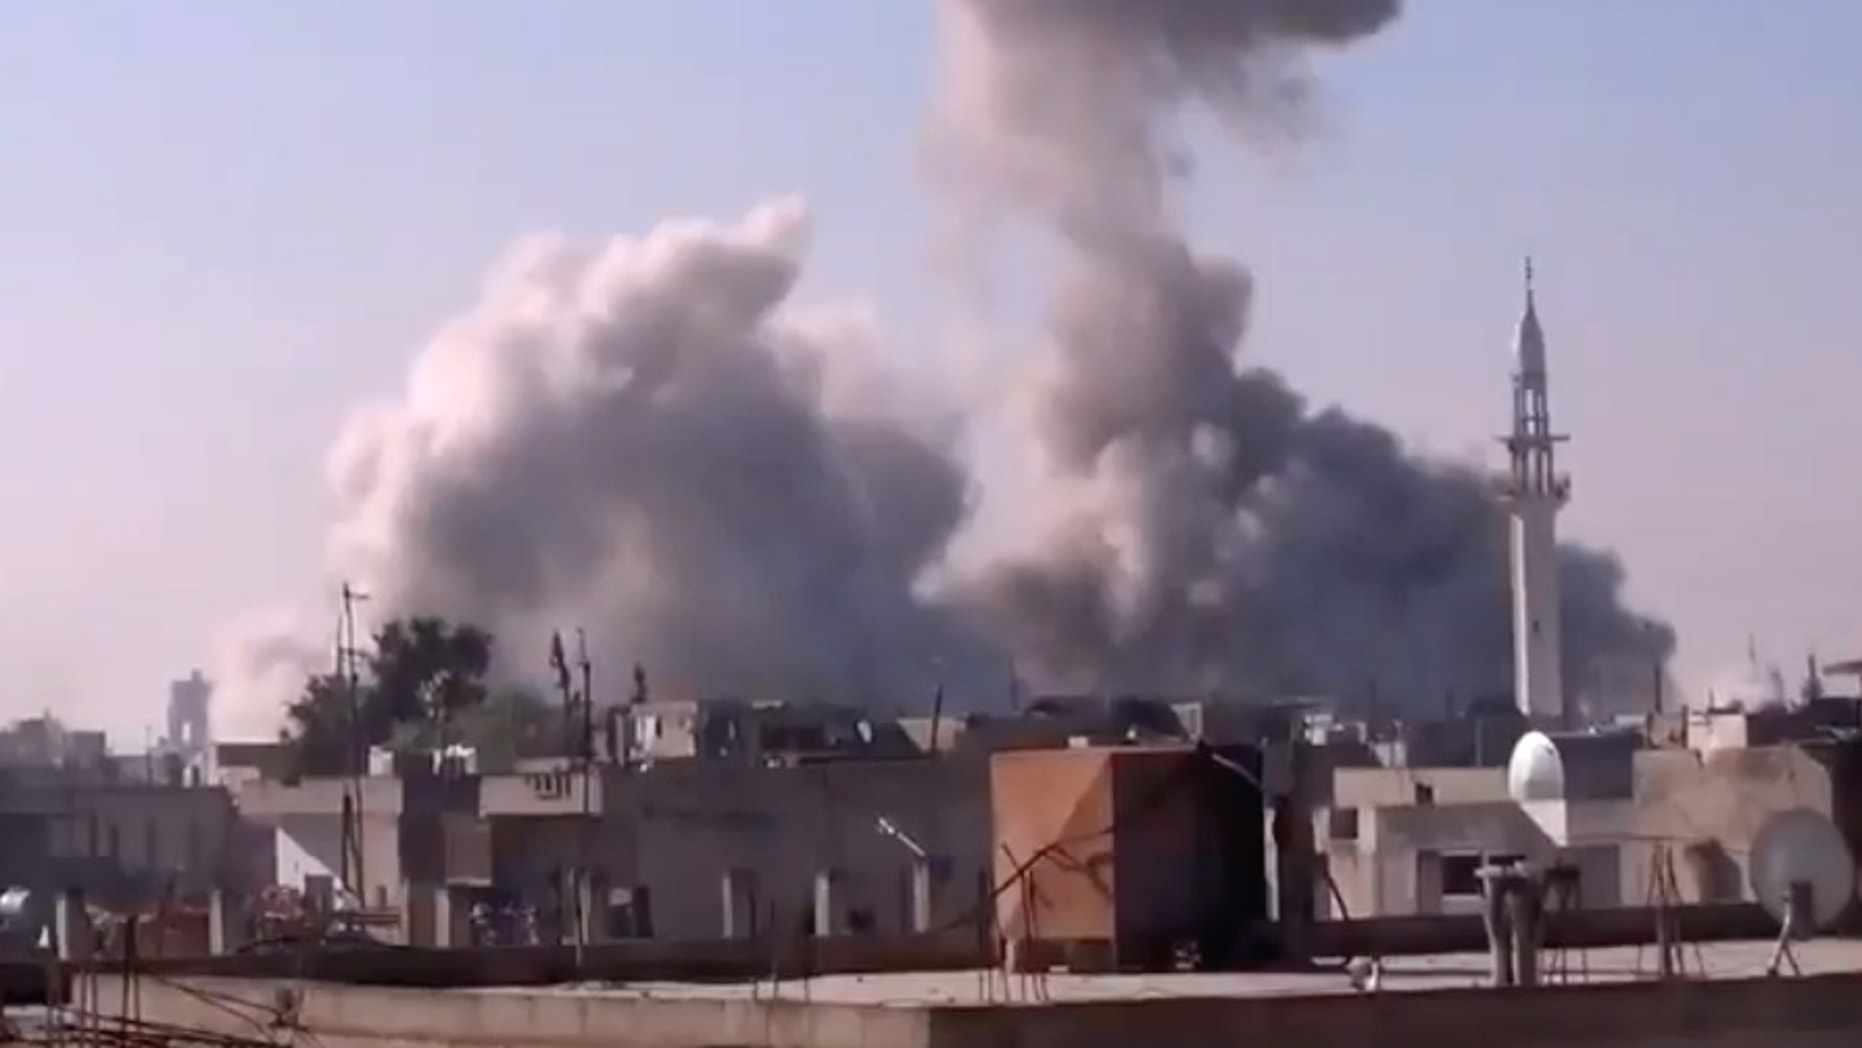 Dec. 27, 2012 - In this image taken from video obtained from the Shaam News Network, smoke rises from buildings from heavy shelling in Homs, Syria.